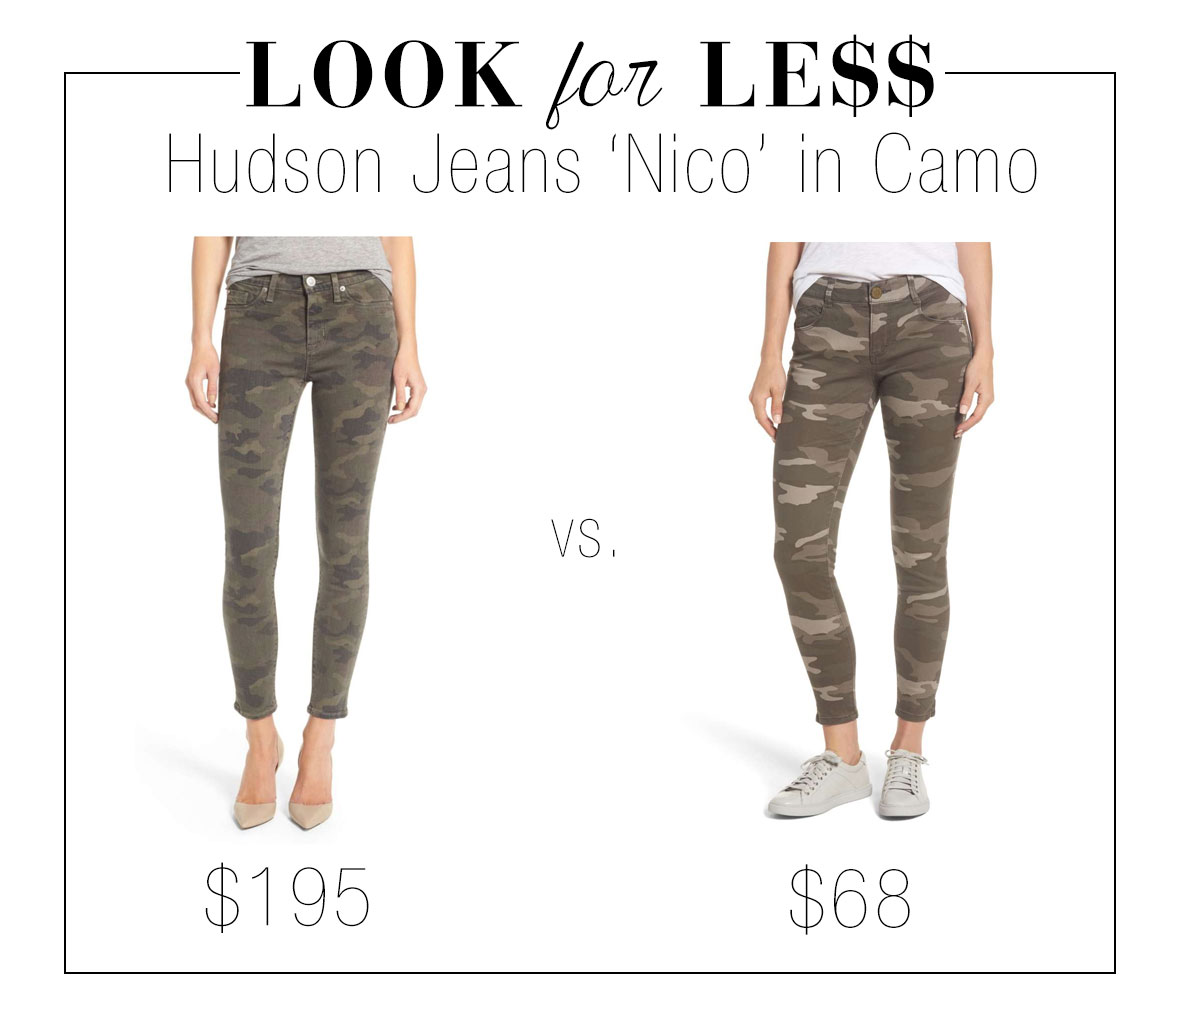 Get the look of Hudson Jeans 'Nico' camo skinny jeans for less.